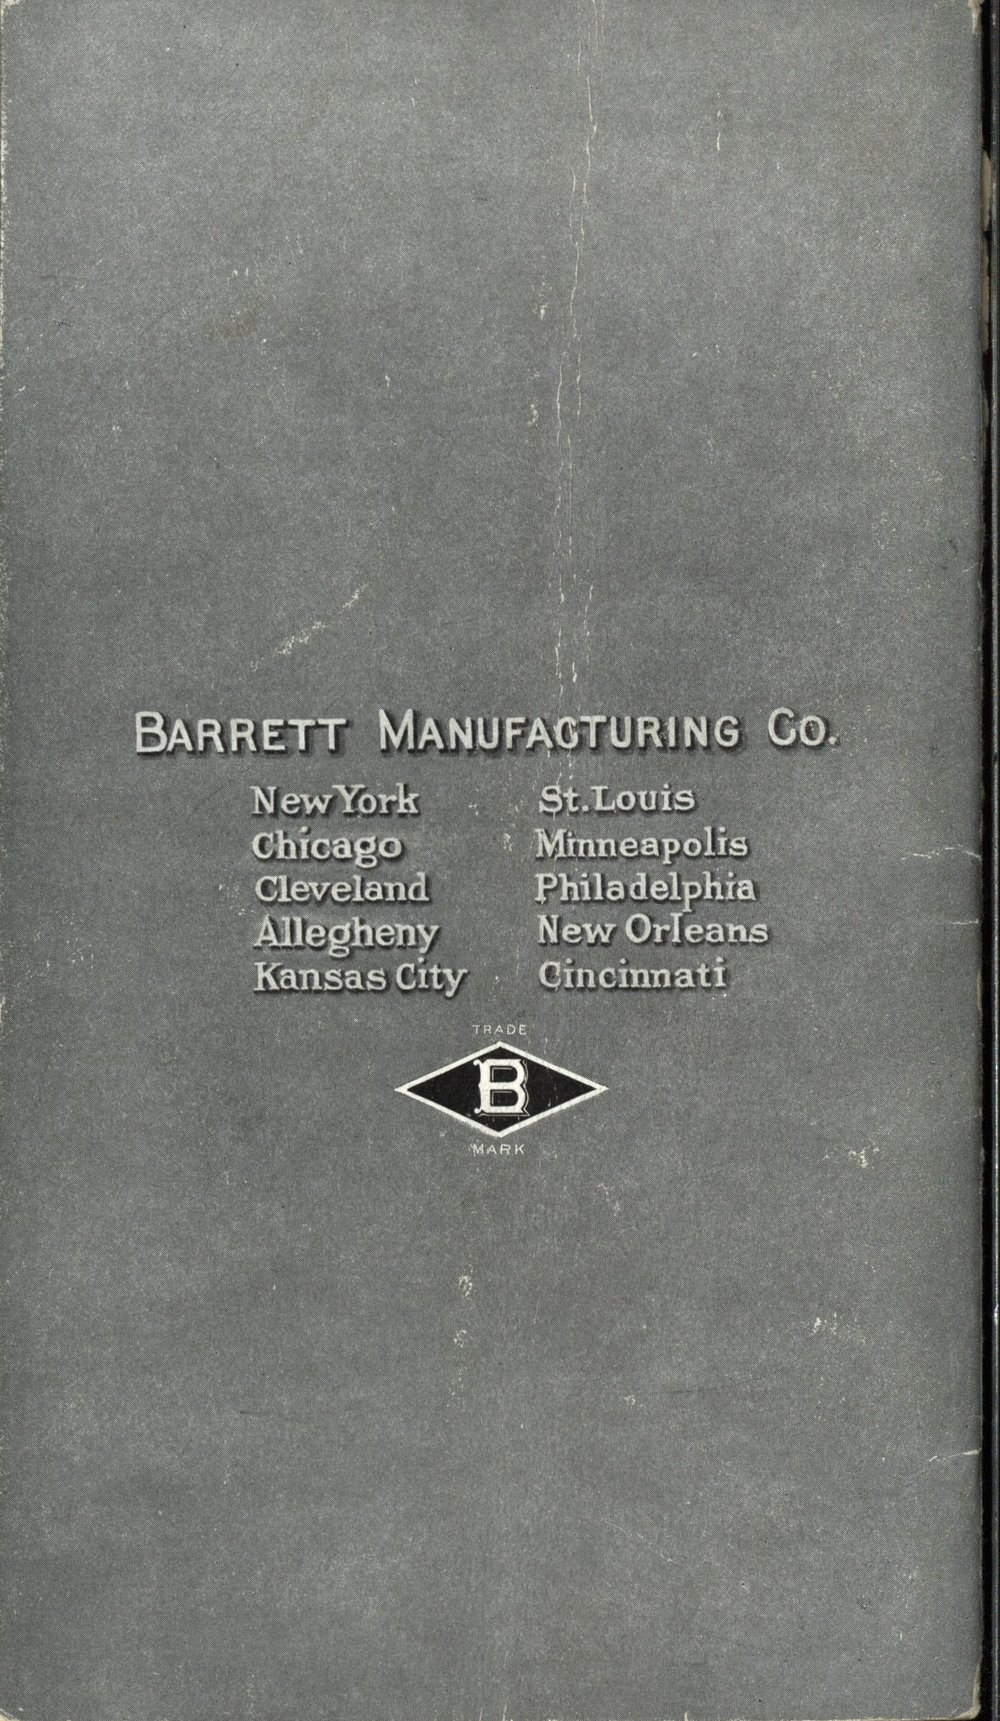 Barretts HndBook On Roofing And Waterproofing 0001 Back Cover.jpg